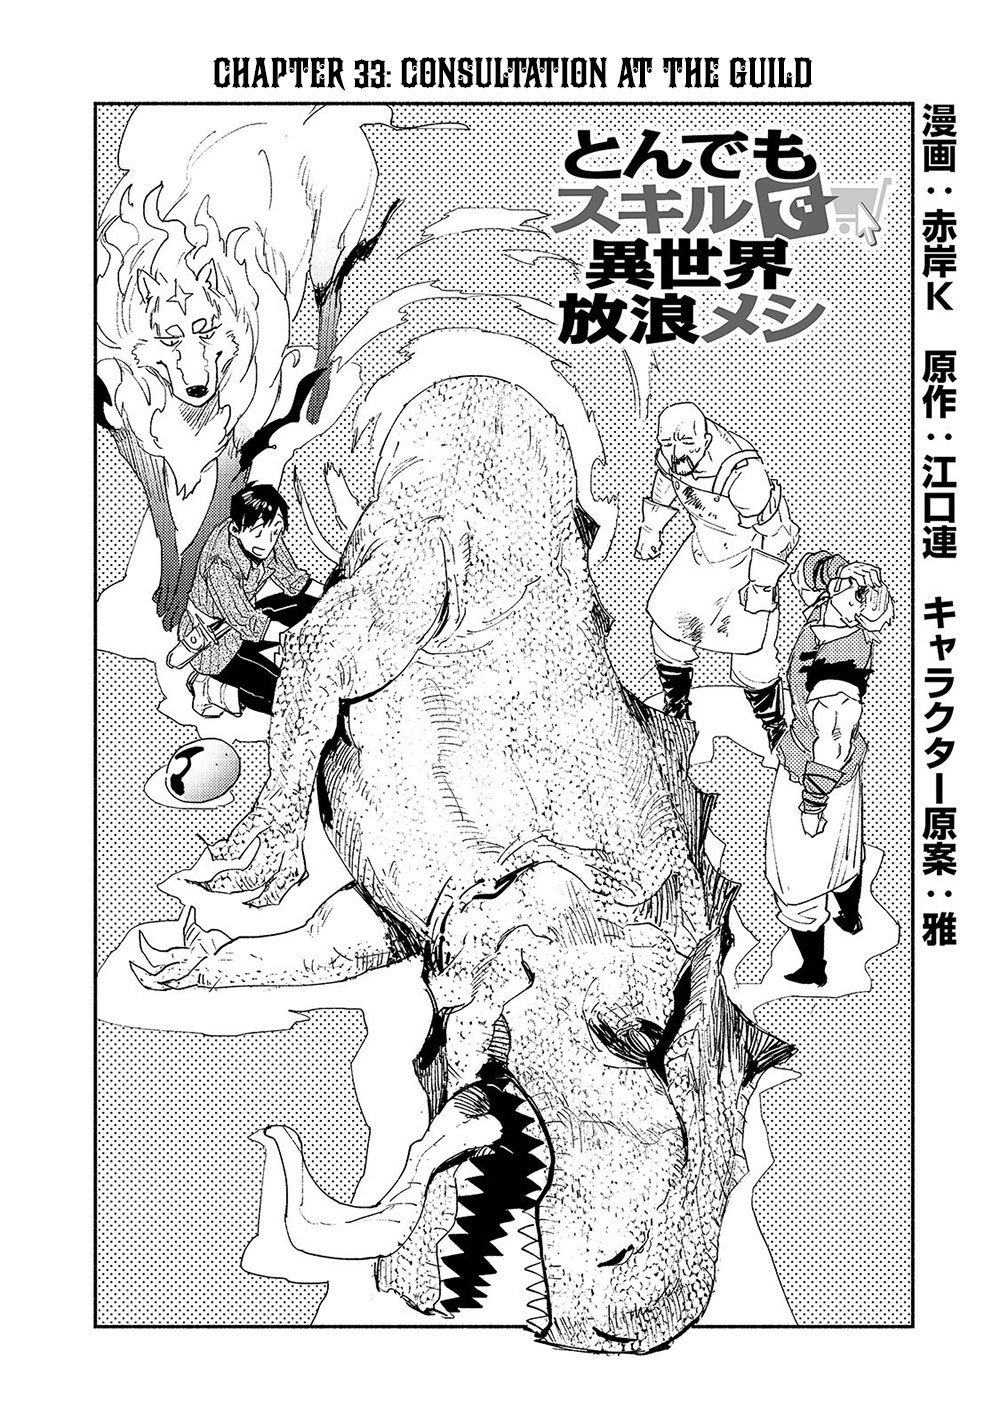 Manga Regarding the Display of an Outrageous Skill Which Has Incredible Powers - Chapter 33 Page 3